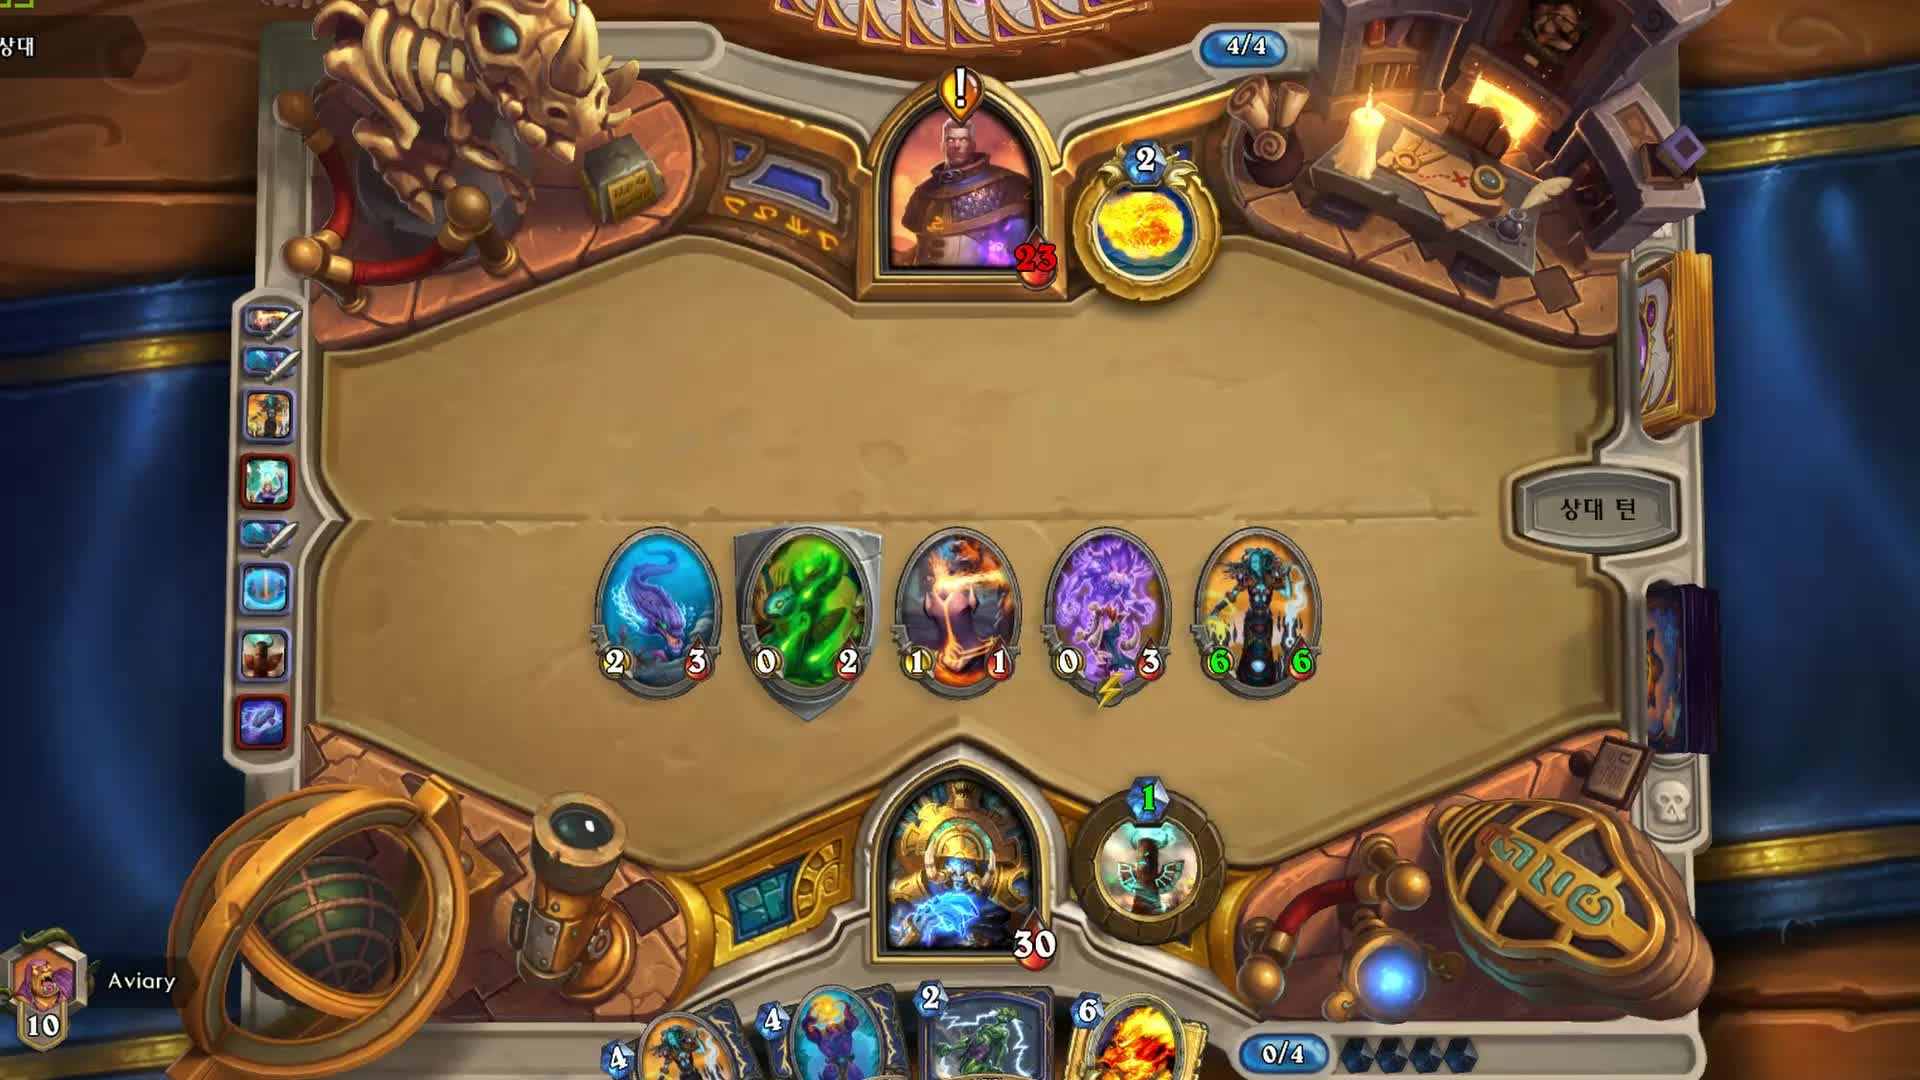 hearthstone, dogshitgame GIFs